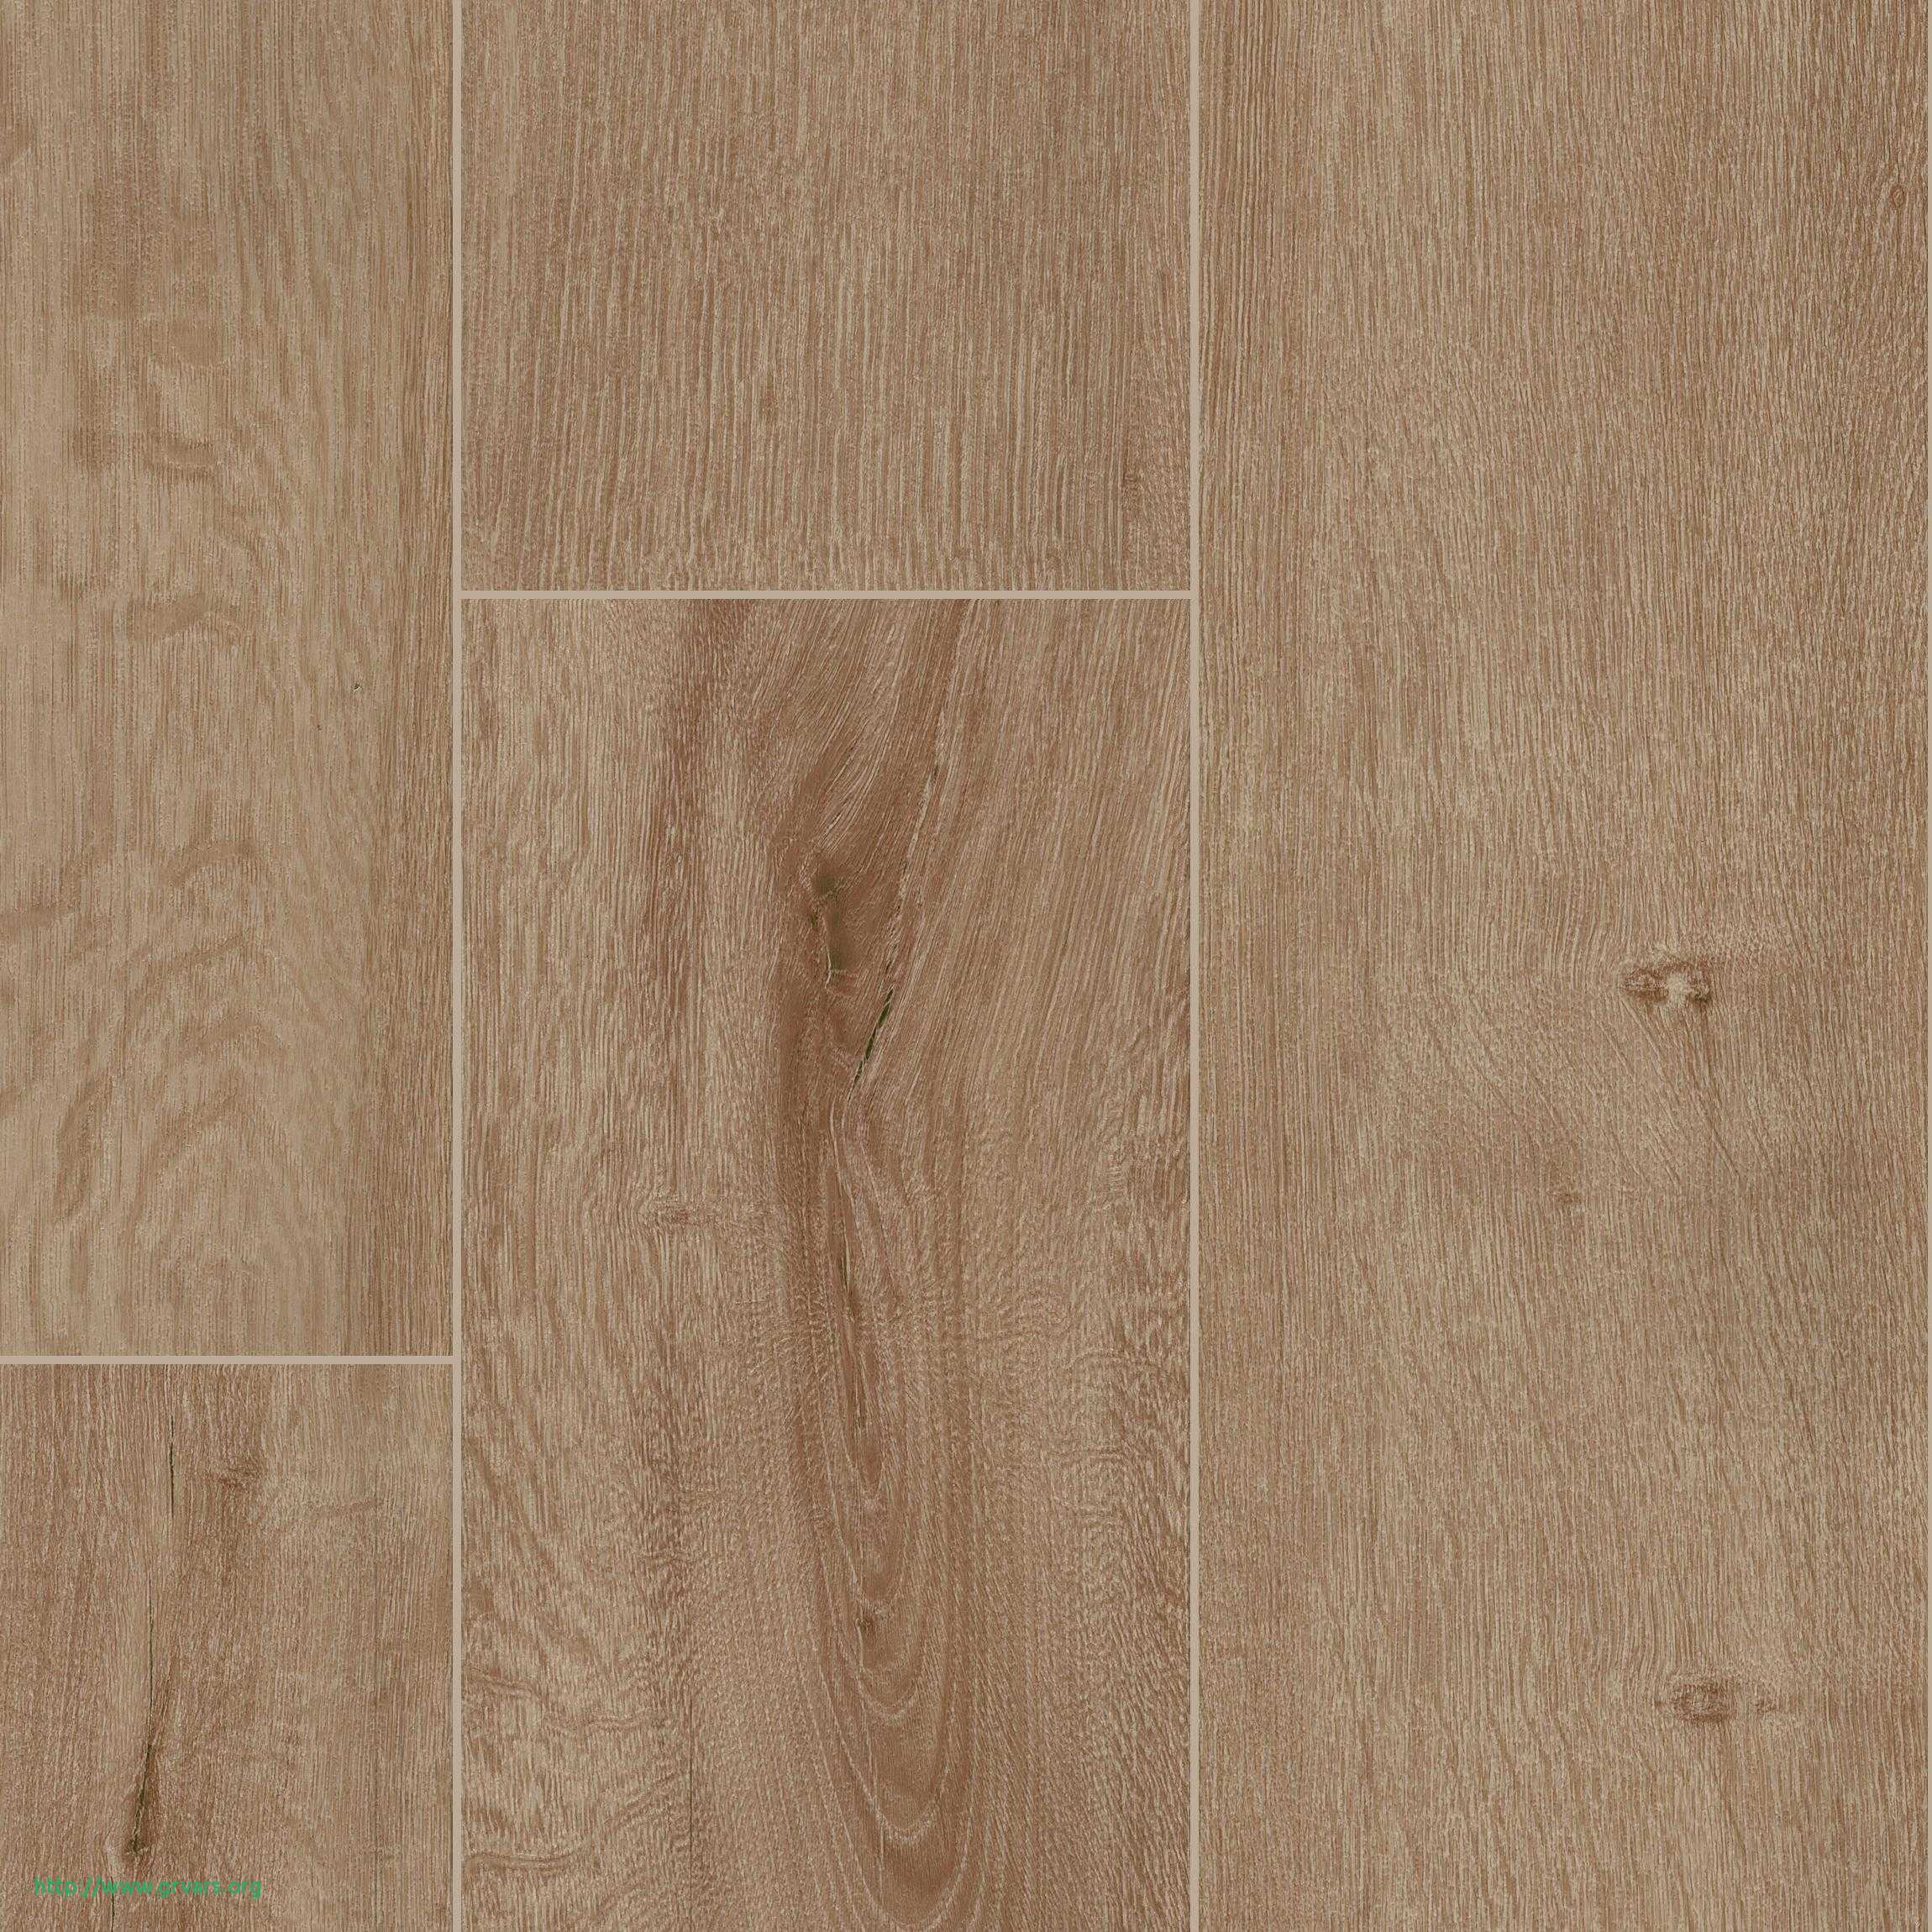 mohawk hardwood and laminate floor cleaner msds of 21 charmant how to cut laminate flooring without chipping ideas blog intended for how to cut laminate flooring without chipping meilleur de mohawk beach beige 9